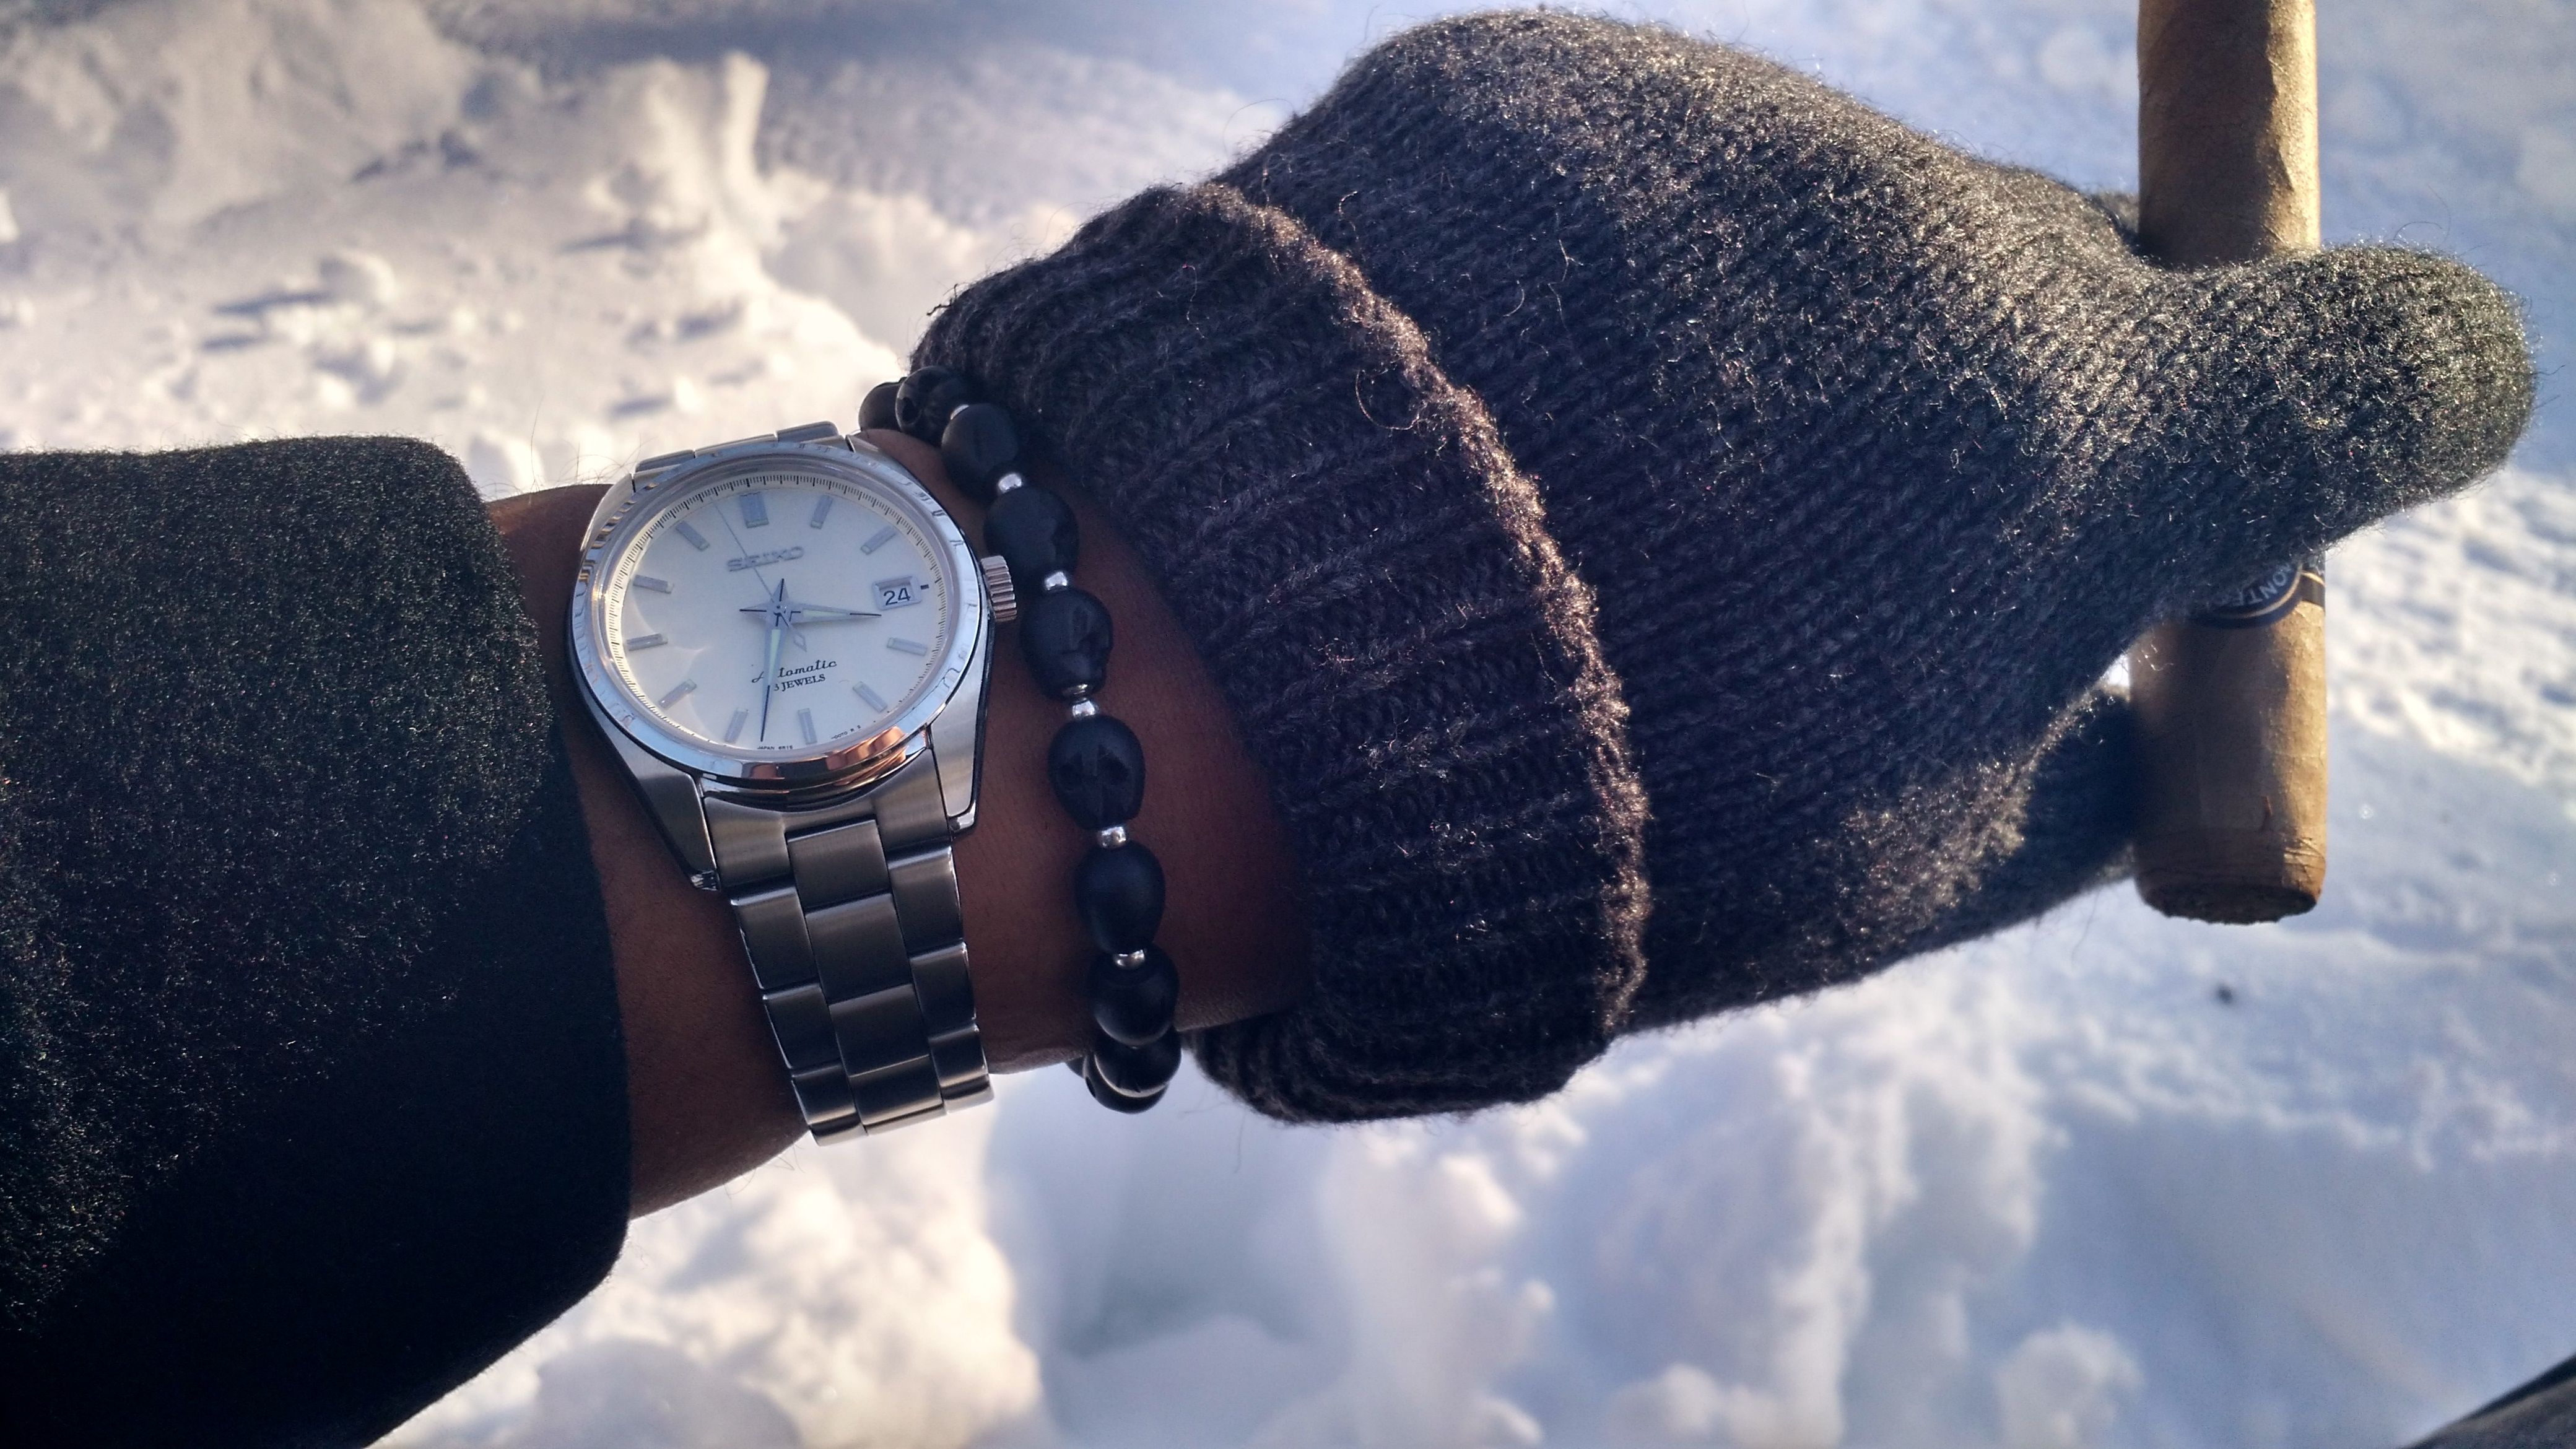 """My SARB035 """"Baby Grand"""" on a sunny day in Lafayette Square the day after Snowmageddon 2016. I've heard people compare it to a Grand Seiko, a Calatrava, a Datejust, and an Aqua Terra but I don't think it needs any comparisons. It makes me happy to put it on all by itself."""